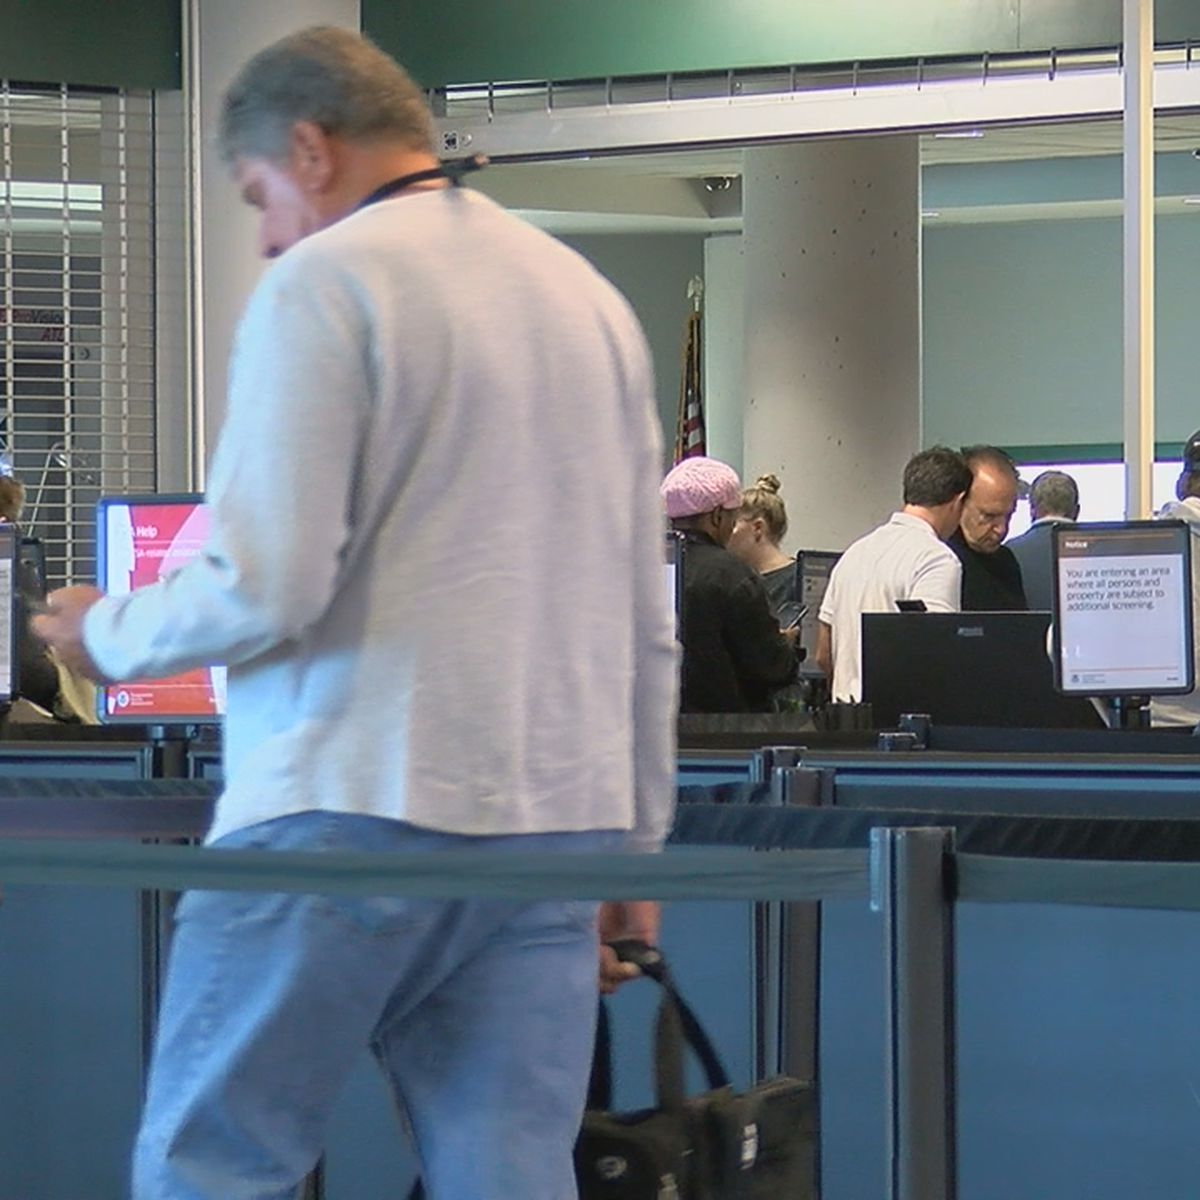 SRQ Airport remain busy through the Thanksgiving holiday travel period